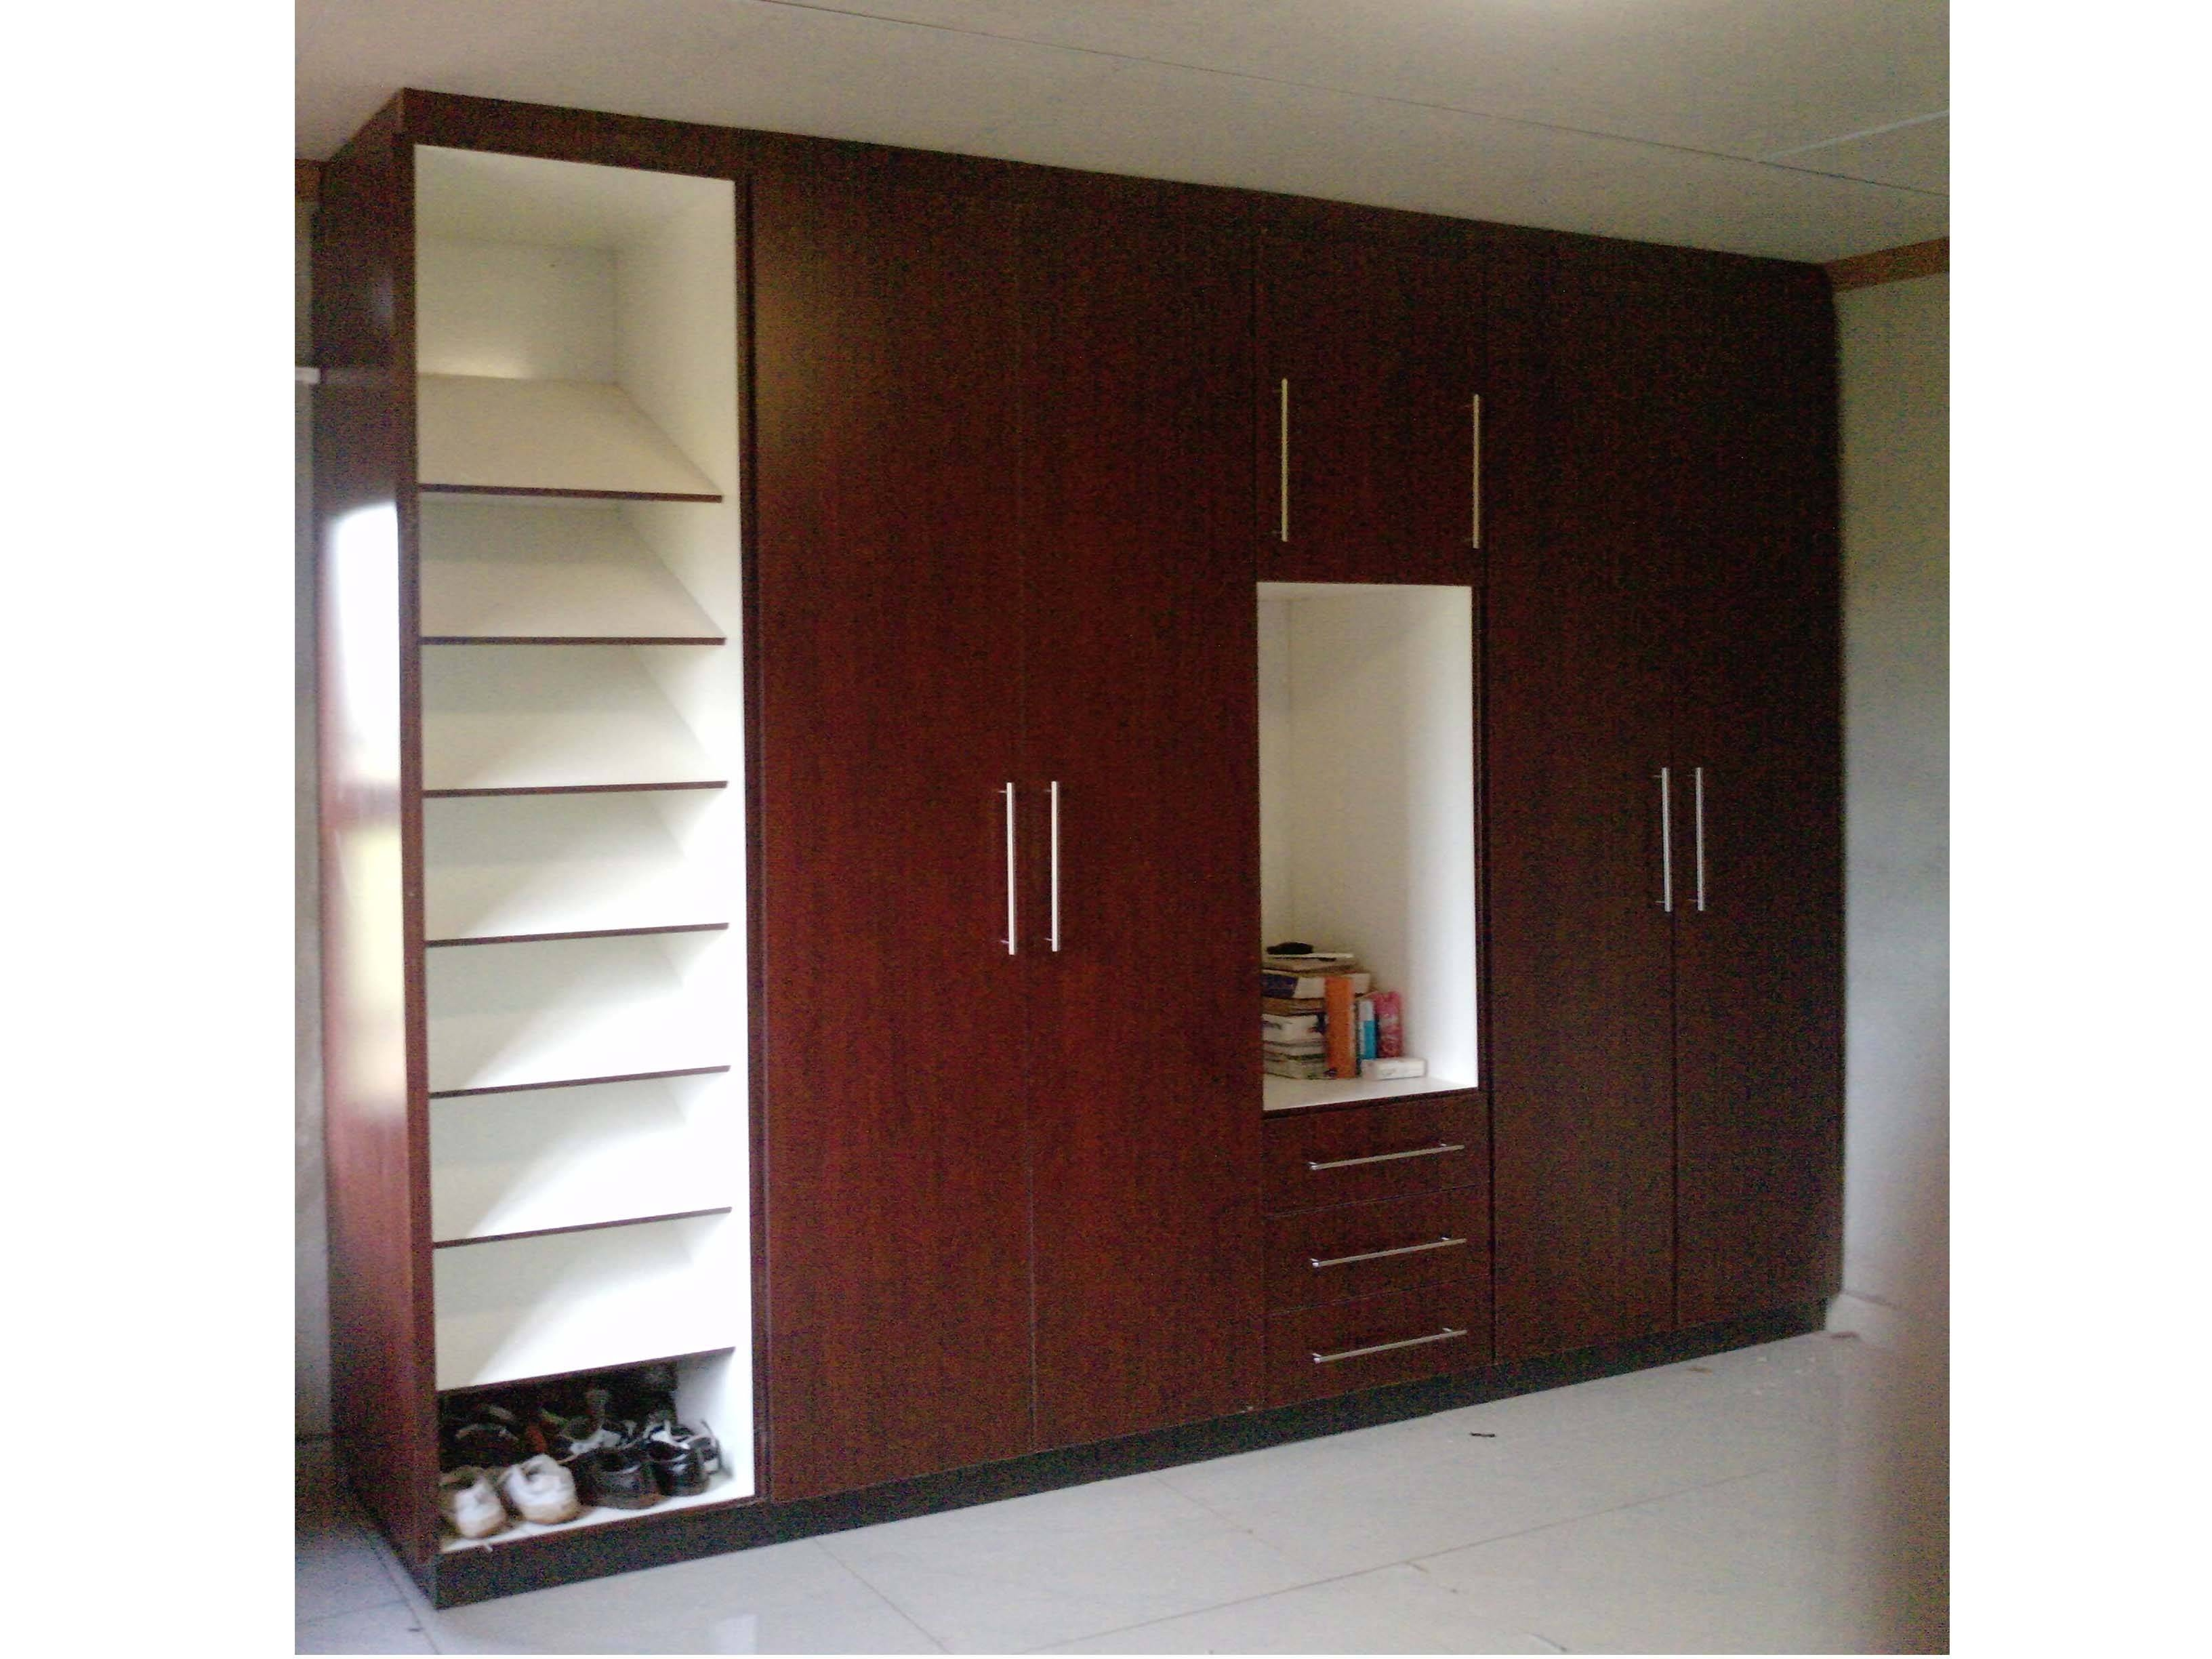 Wall Wardrobes And Fitted Wardrobes | Wood Crafters Investment with regard to Wall Wardrobes (Image 27 of 30)